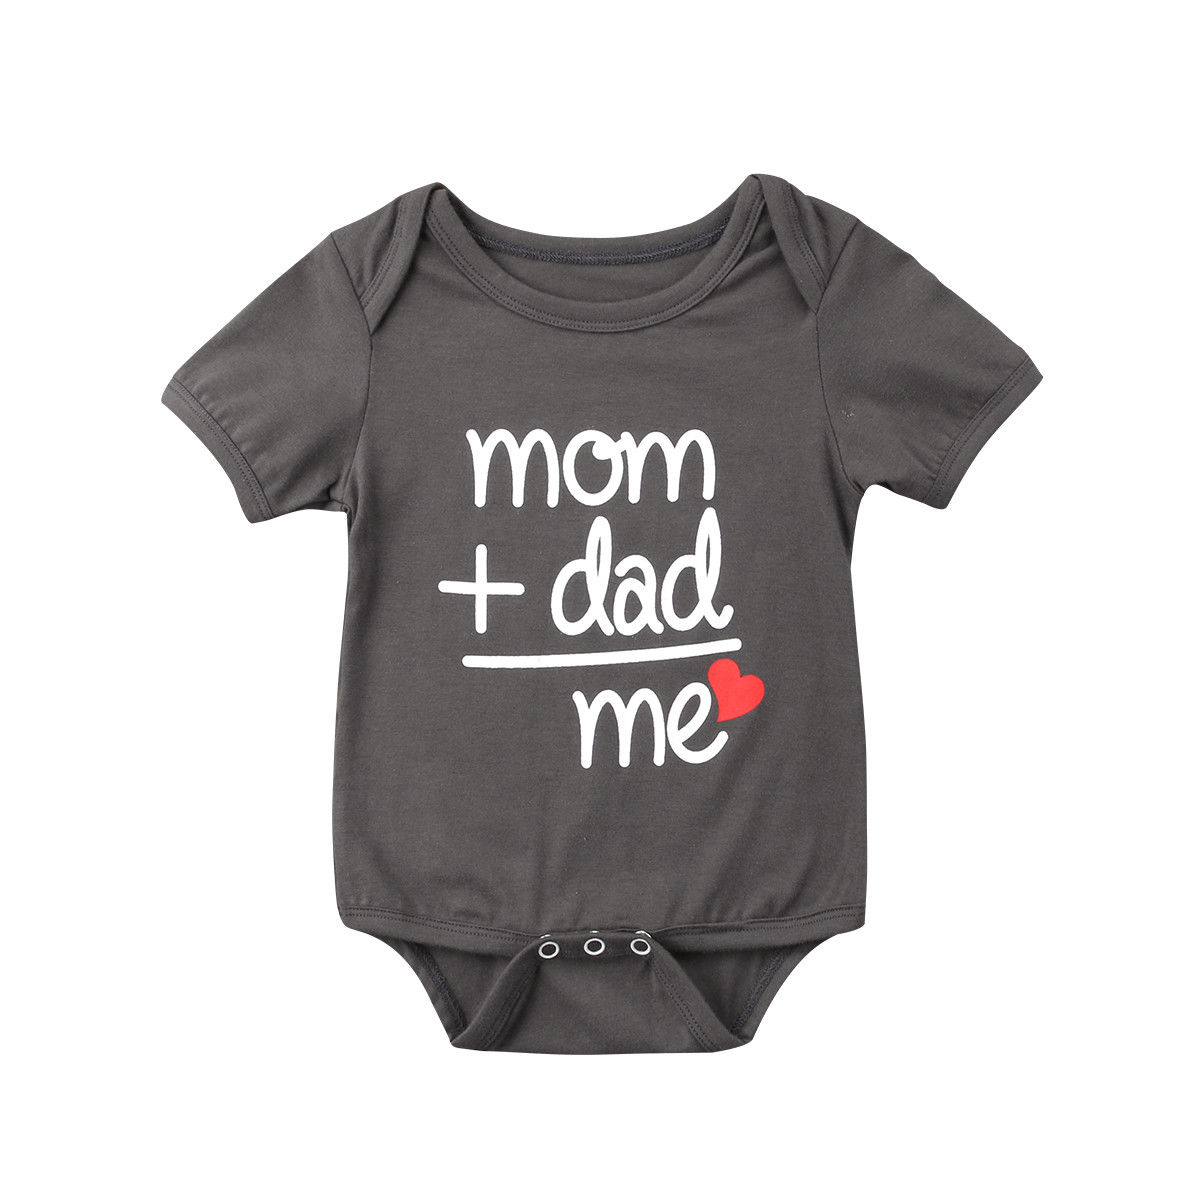 2019 Hot Family Love Newborn Baby Boy Girl Clothes Body Short Sleeve Letter   Romper   Jumpsuit Outfit Mom Dad Me